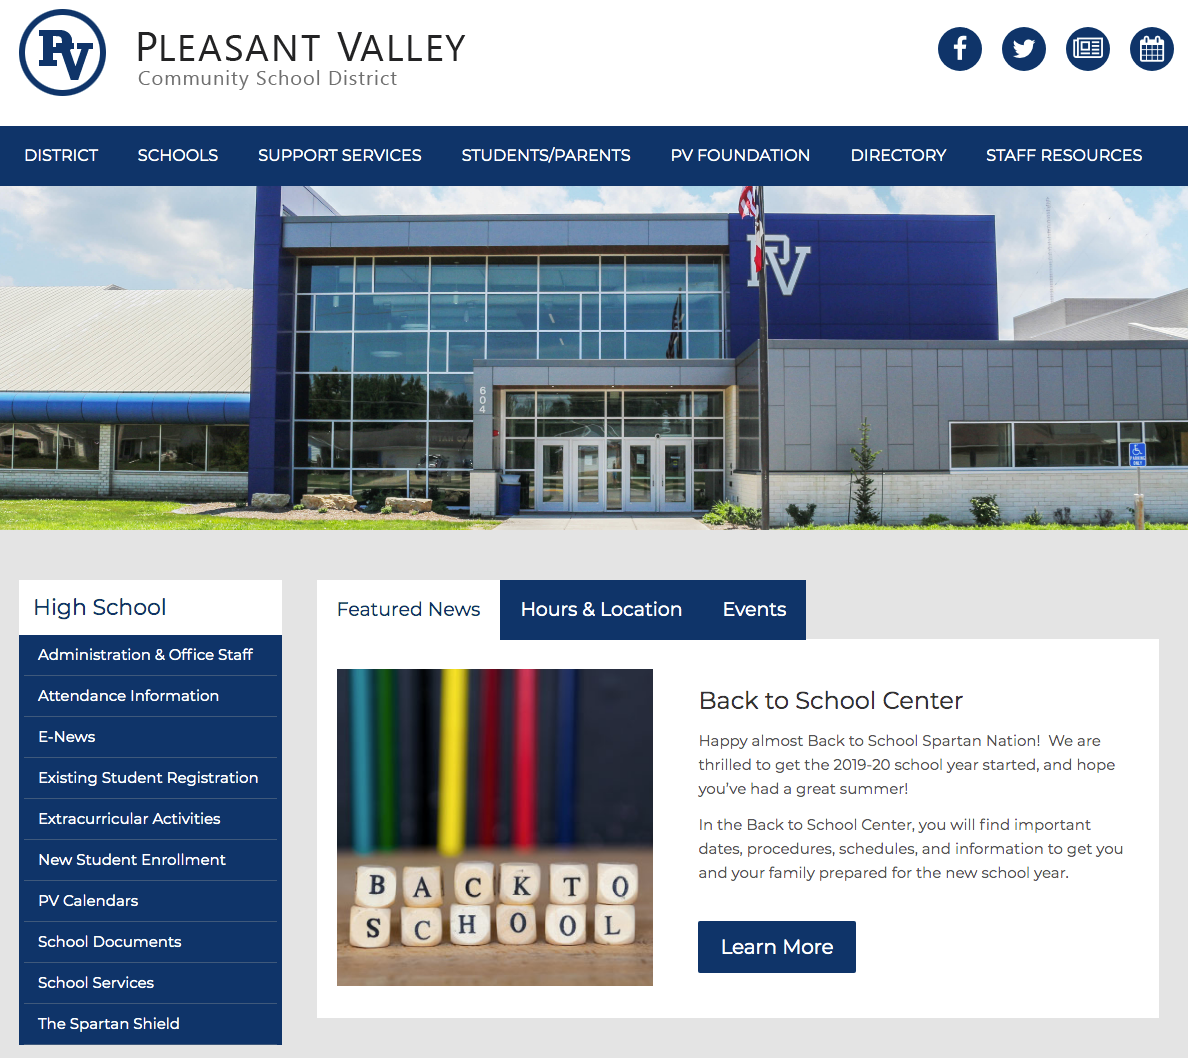 Pleasant Valley Community School District website by Campus Suite